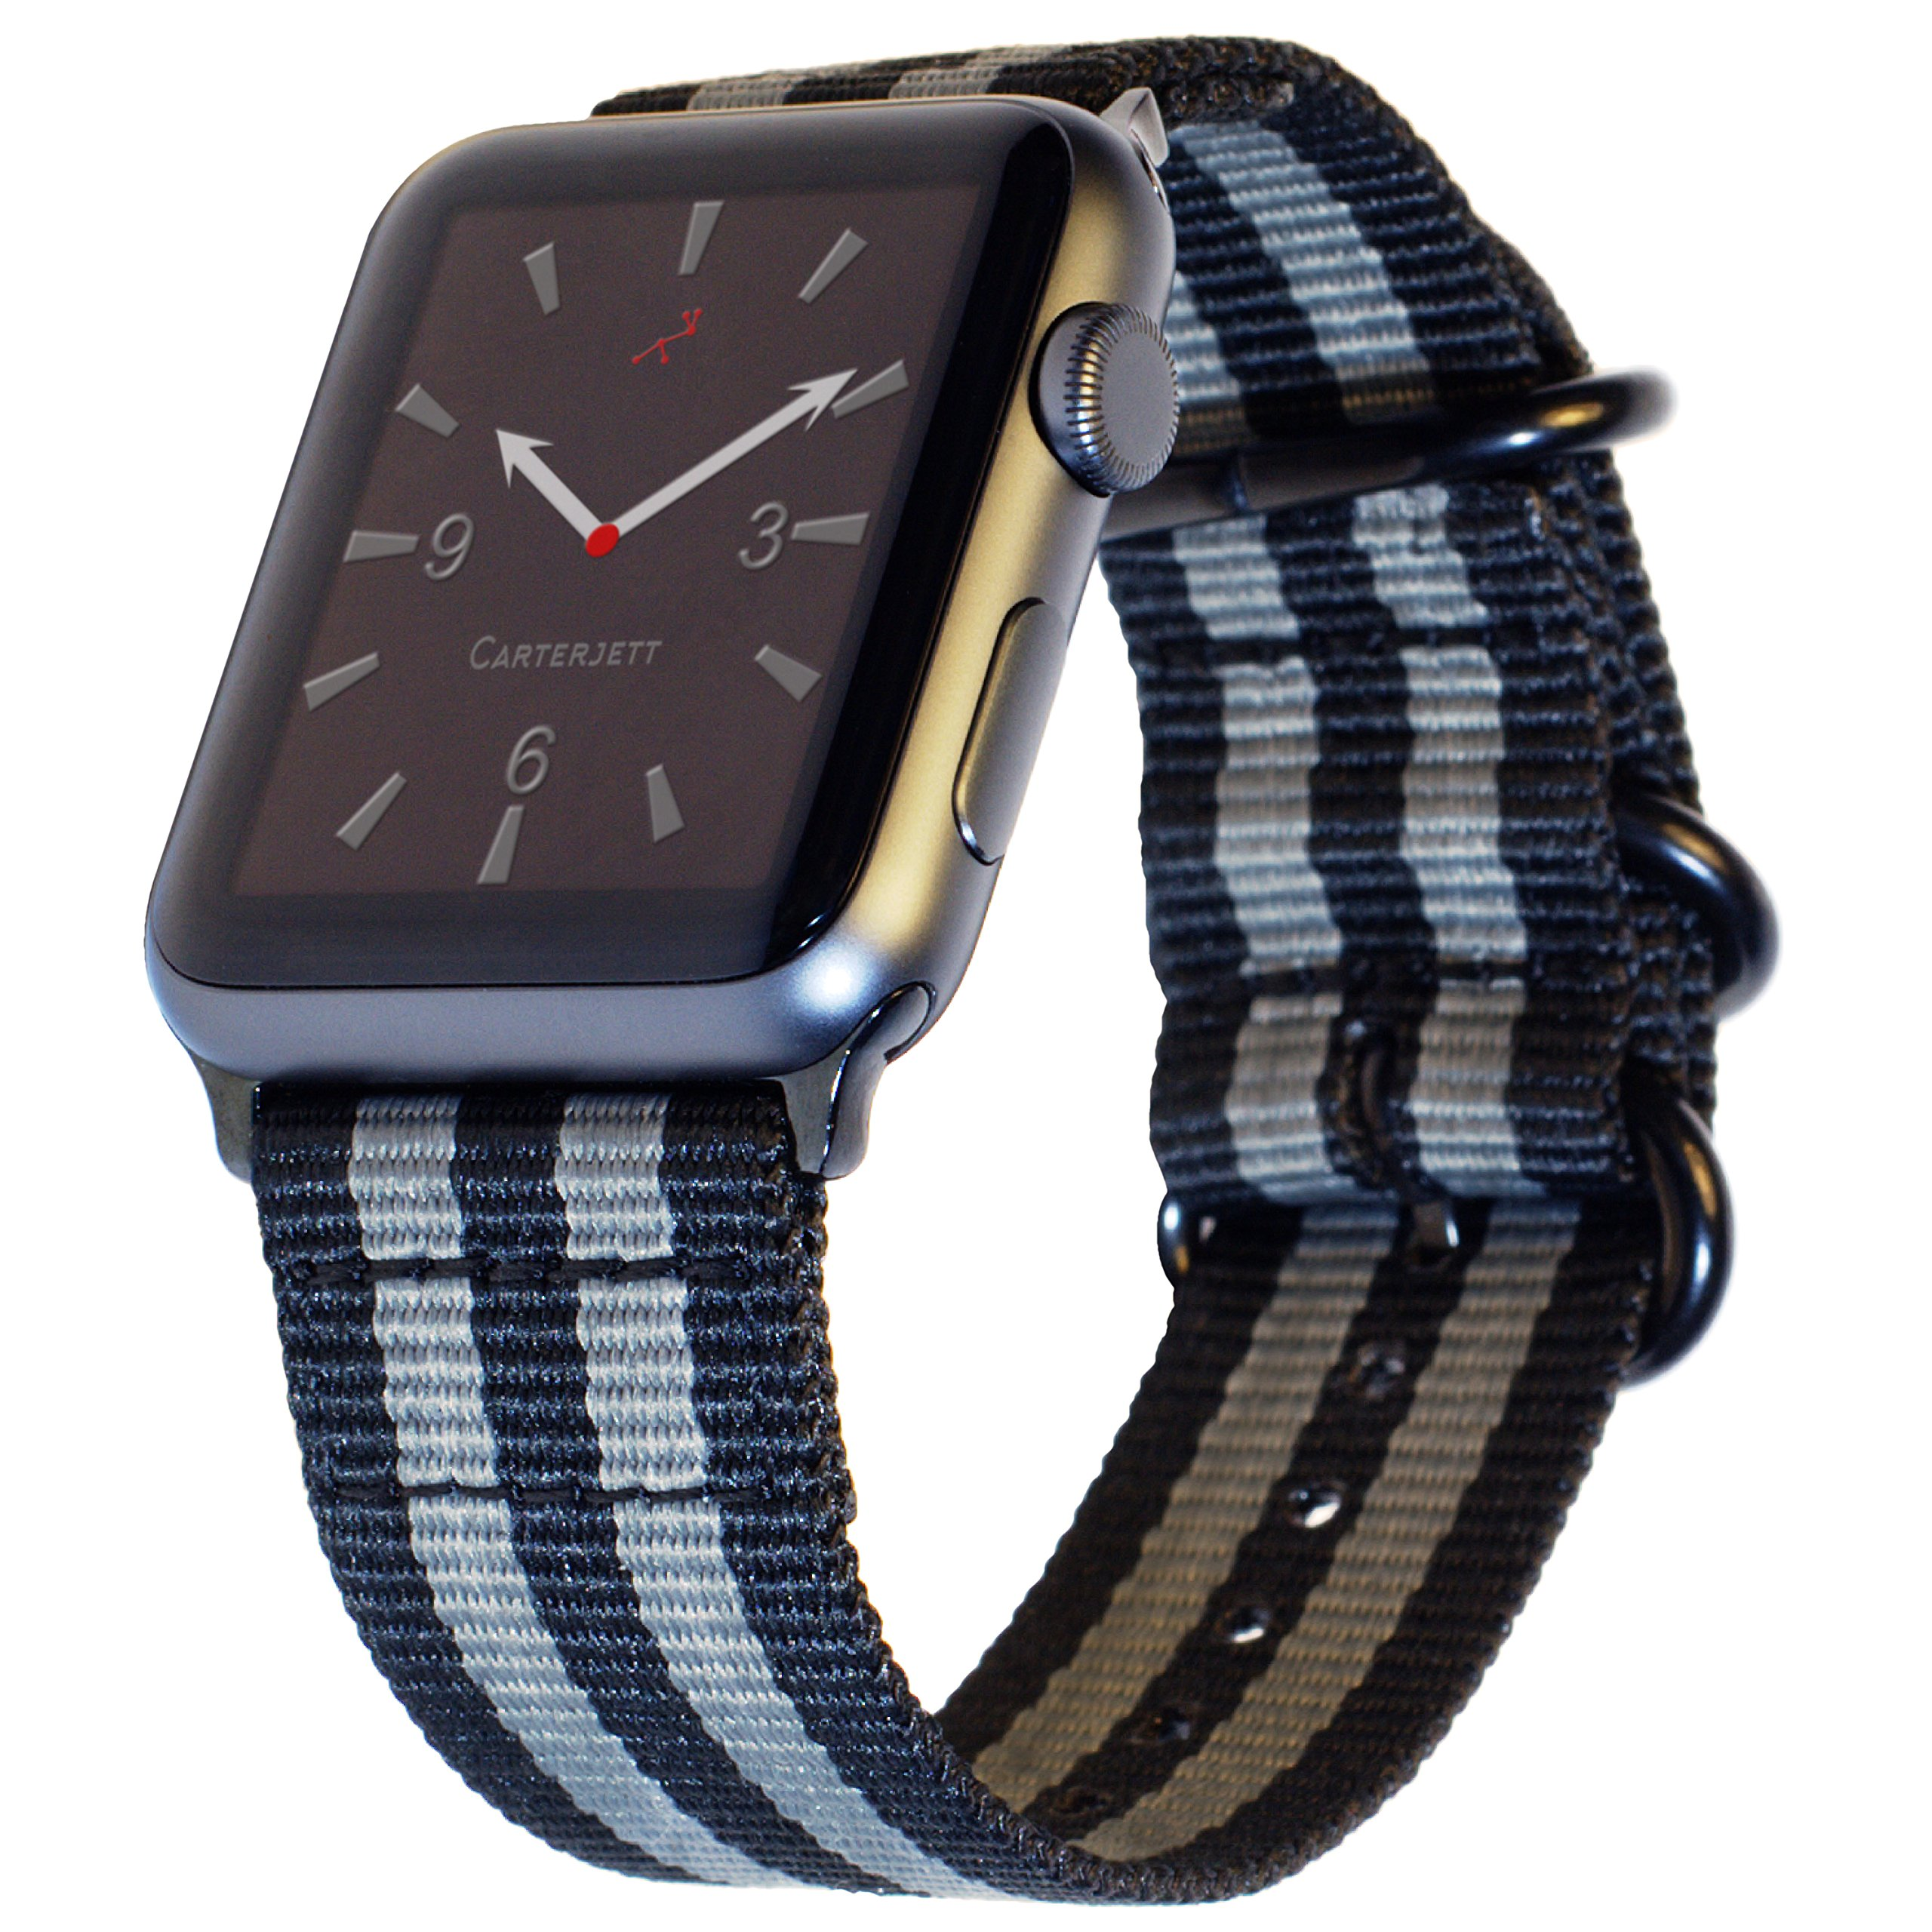 Carterjett Compatible Apple Watch Nylon Band 42mm iWatch Band Replacement Strap Durable Woven Canvas Stripe NATO Hardware Compatible Apple Watch Sport, Nike Series 1 2 3, 42 S/M/L Space Gray/Black